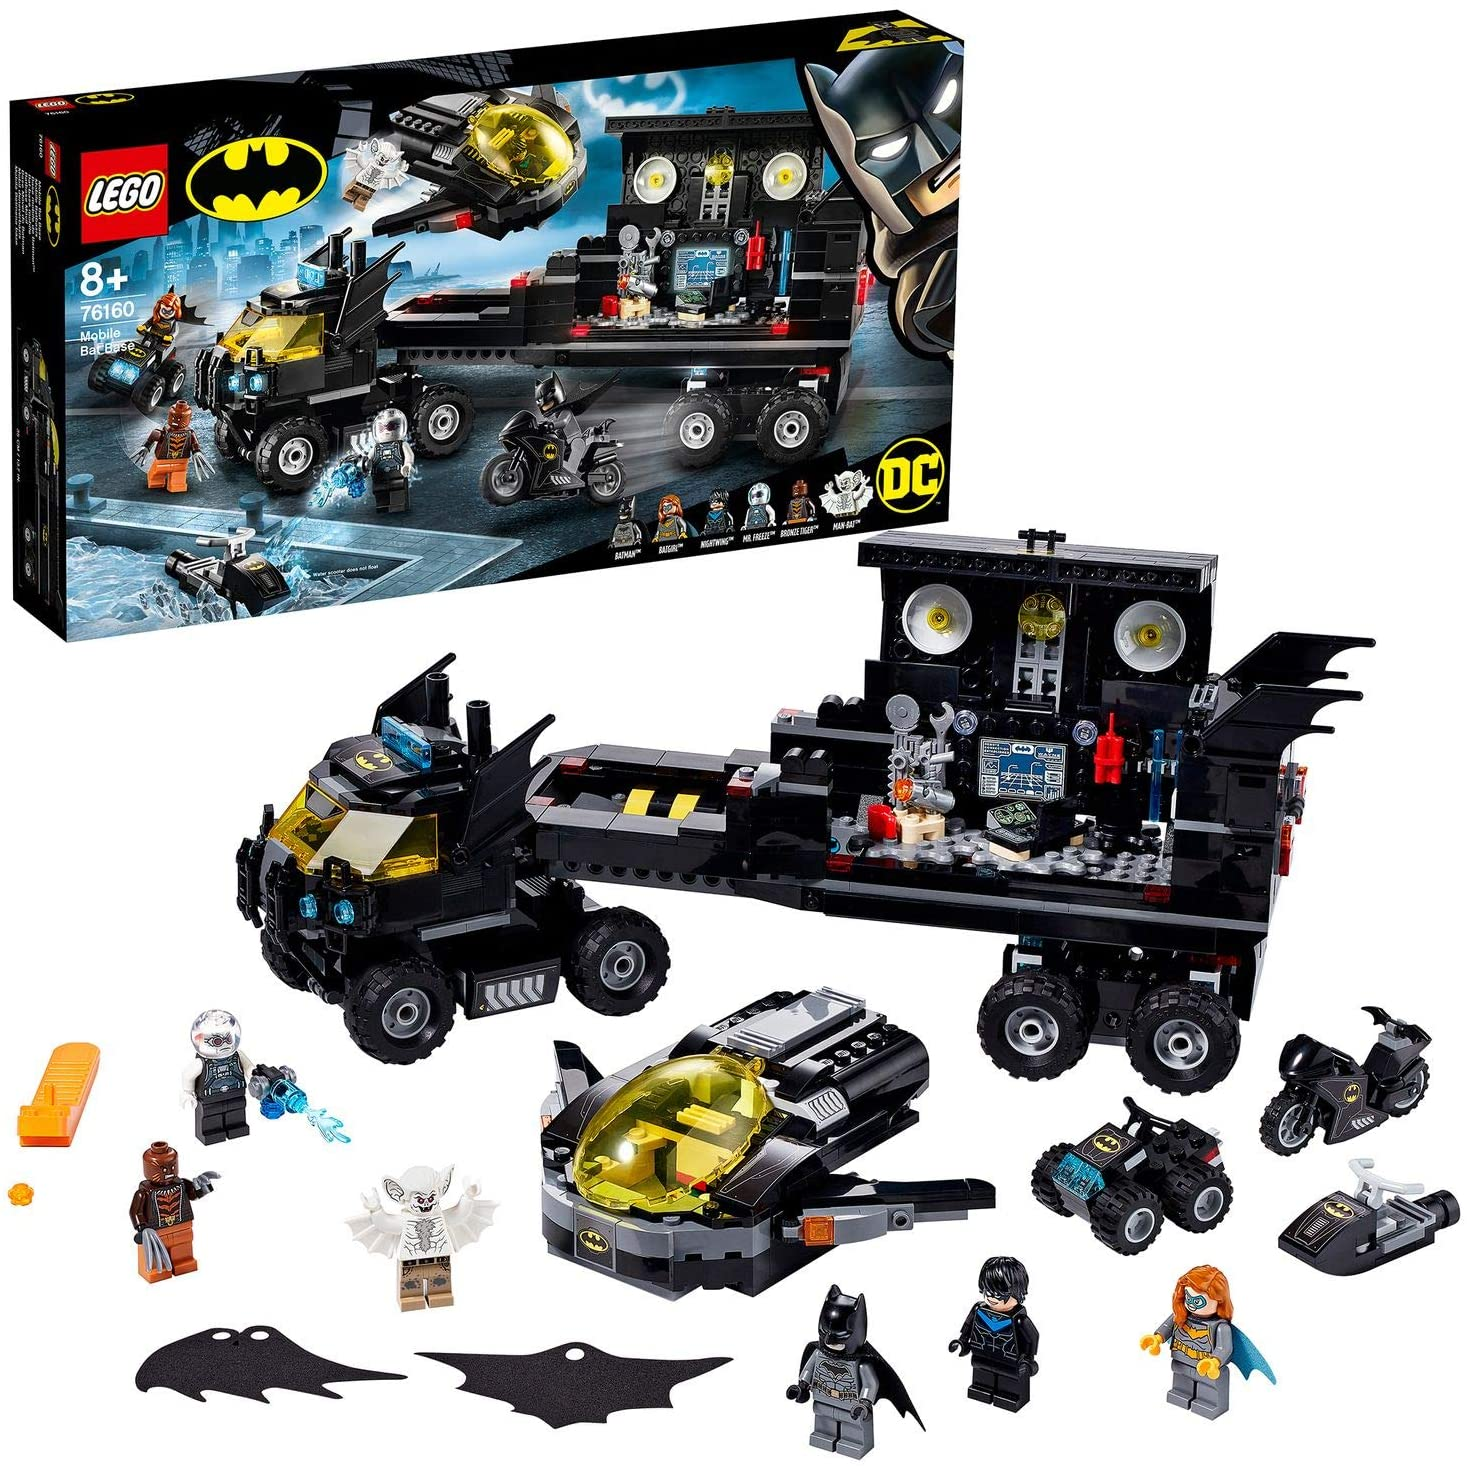 LEGO DC Batman Bat-base mobile 76160